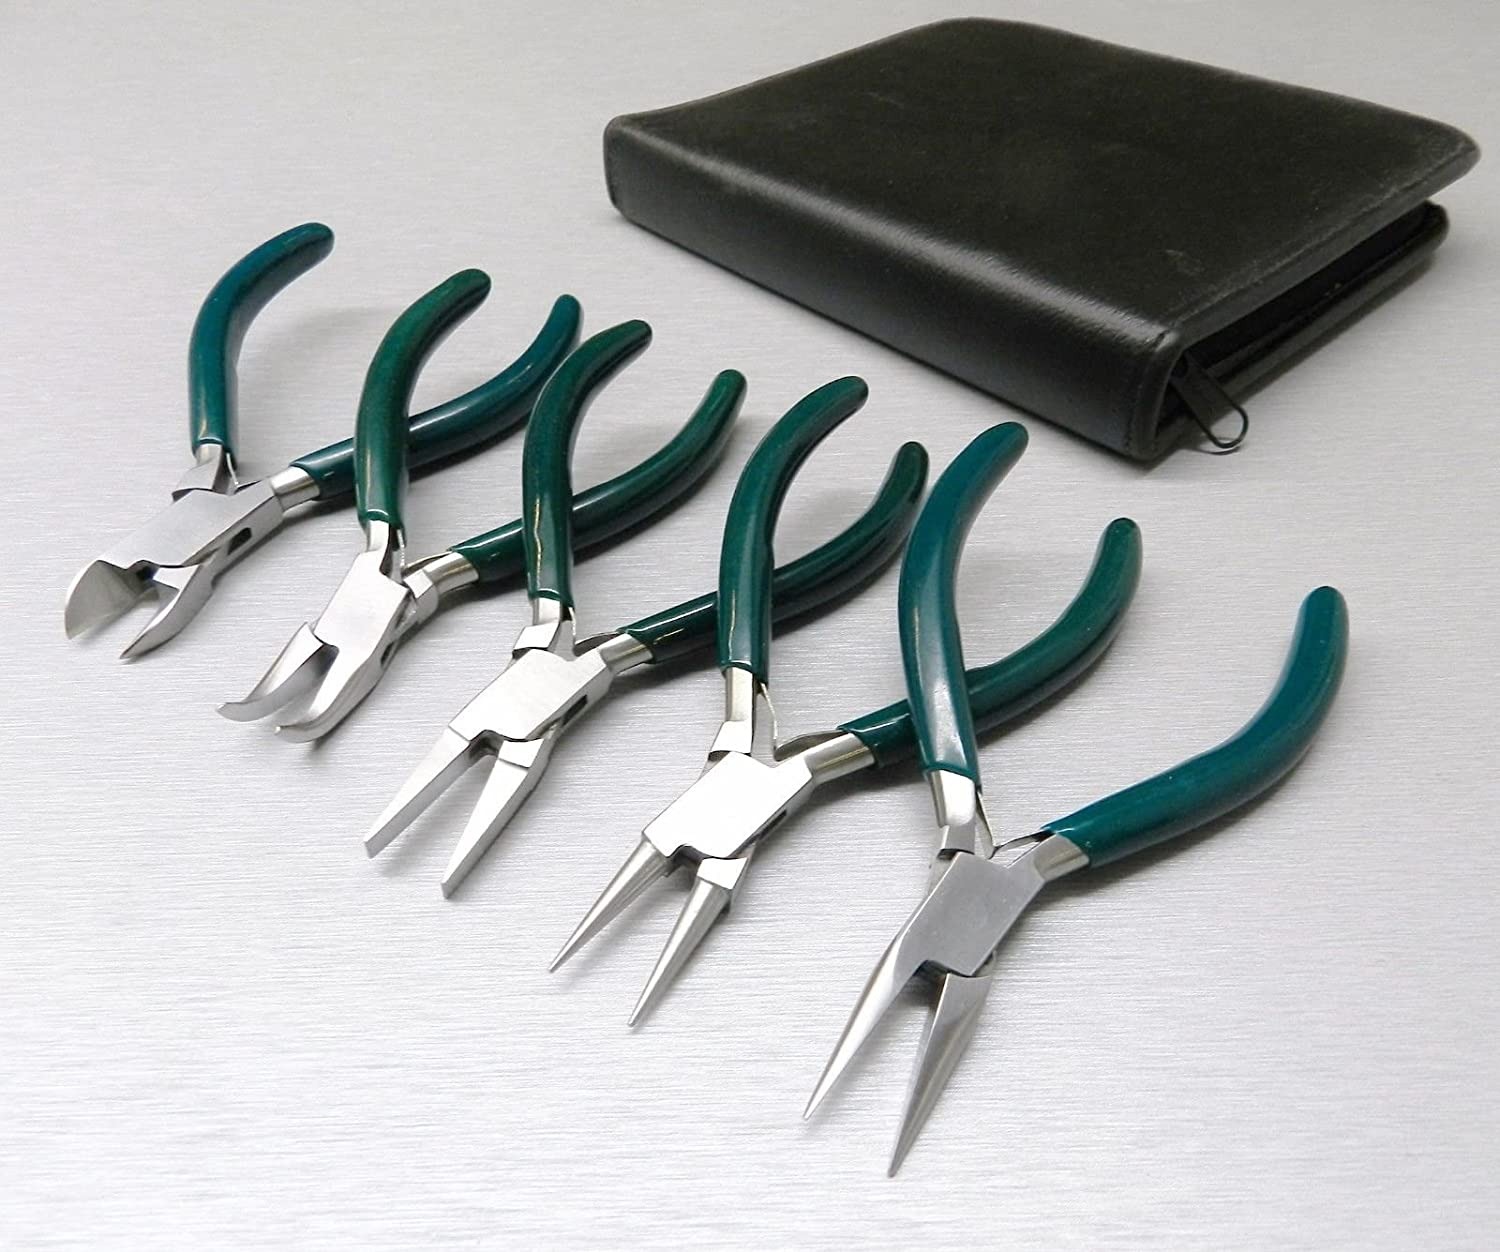 5 Pc JEWELERS PLIERS SET JEWELRY MAKING BEADING WIRE WRAPPING HOBBY 5